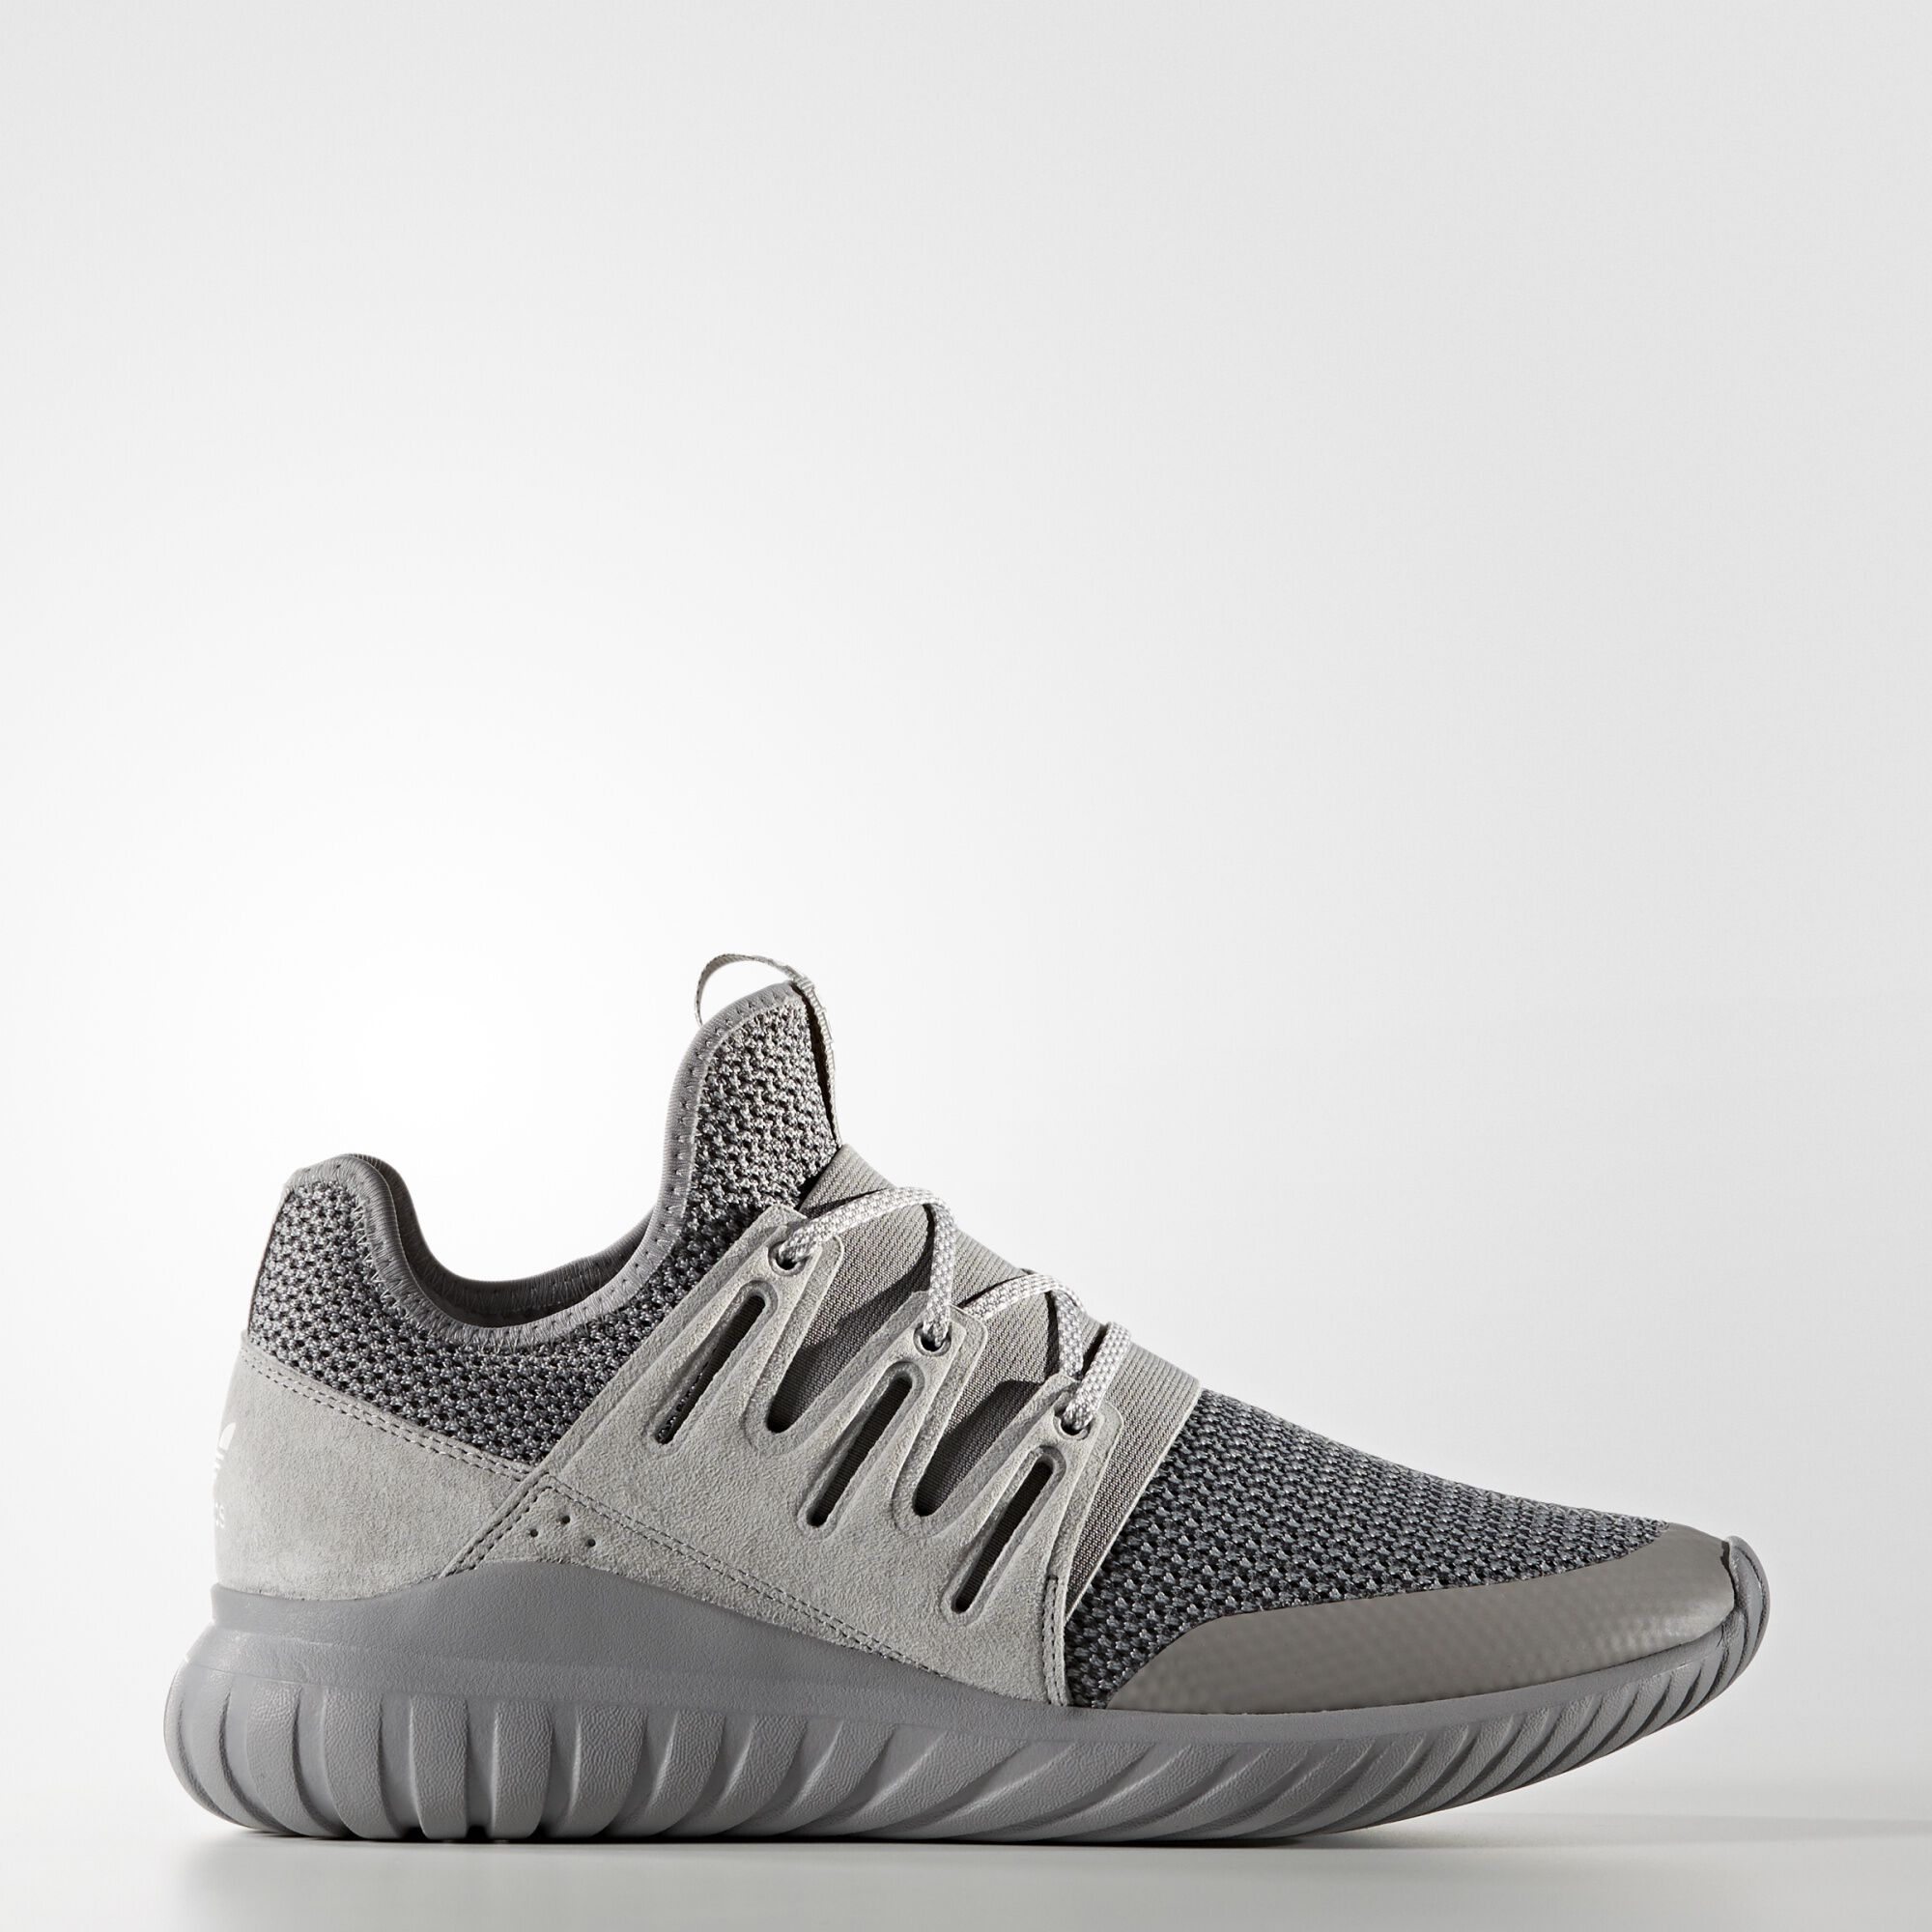 Adidas Tubular Low Grey